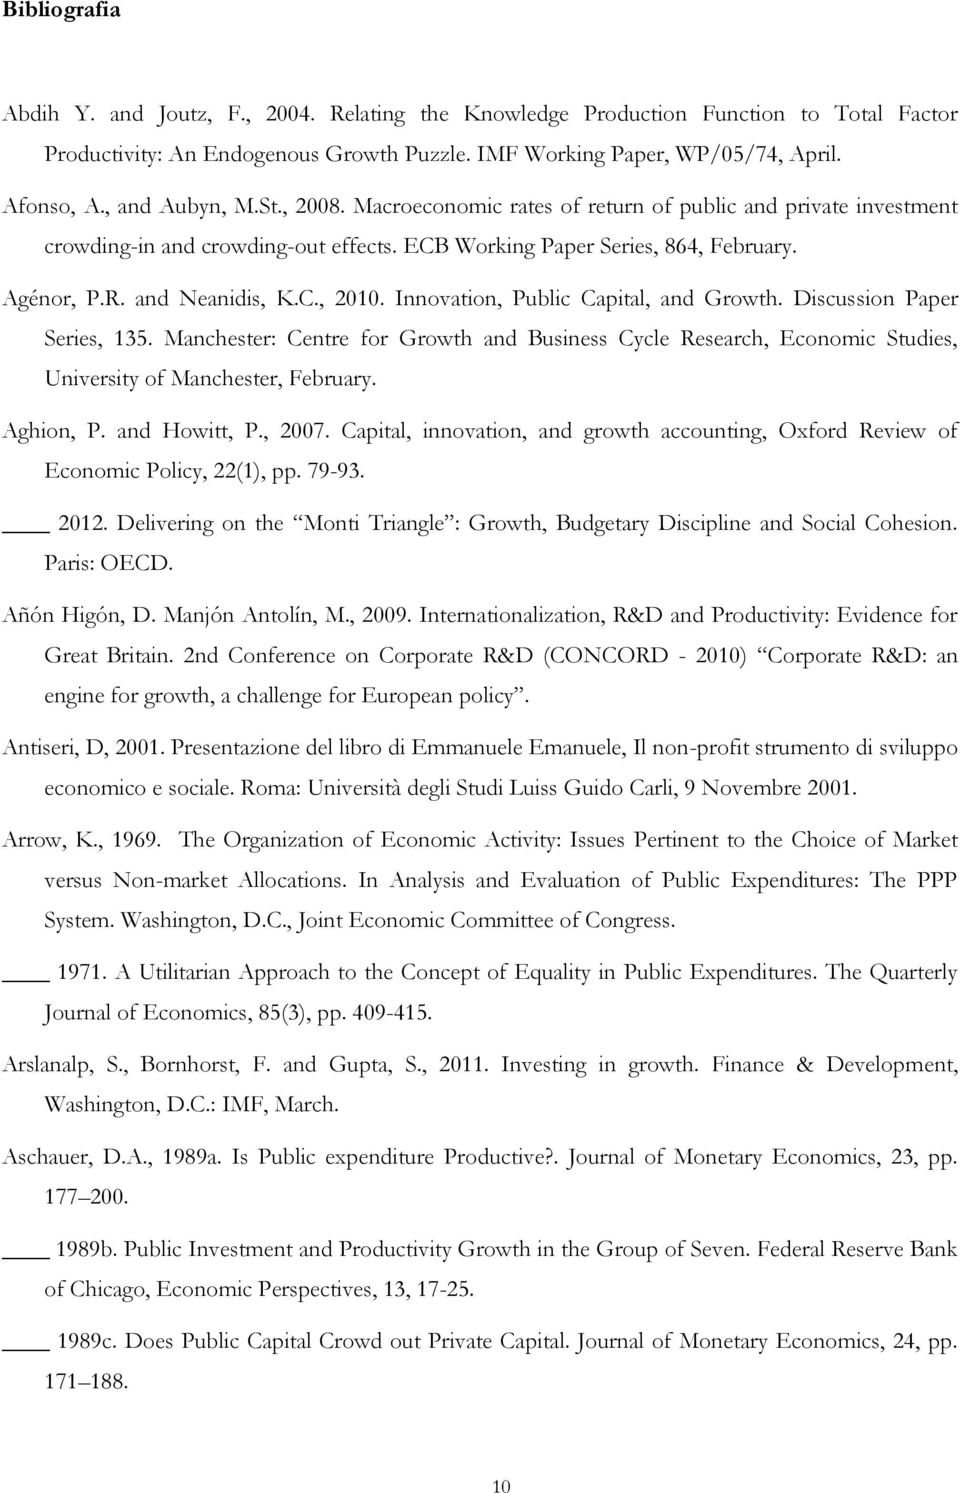 Innovation, Public Capital, and Growth. Discussion Paper Series, 135. Manchester: Centre for Growth and Business Cycle Research, Economic Studies, University of Manchester, February. Aghion, P.